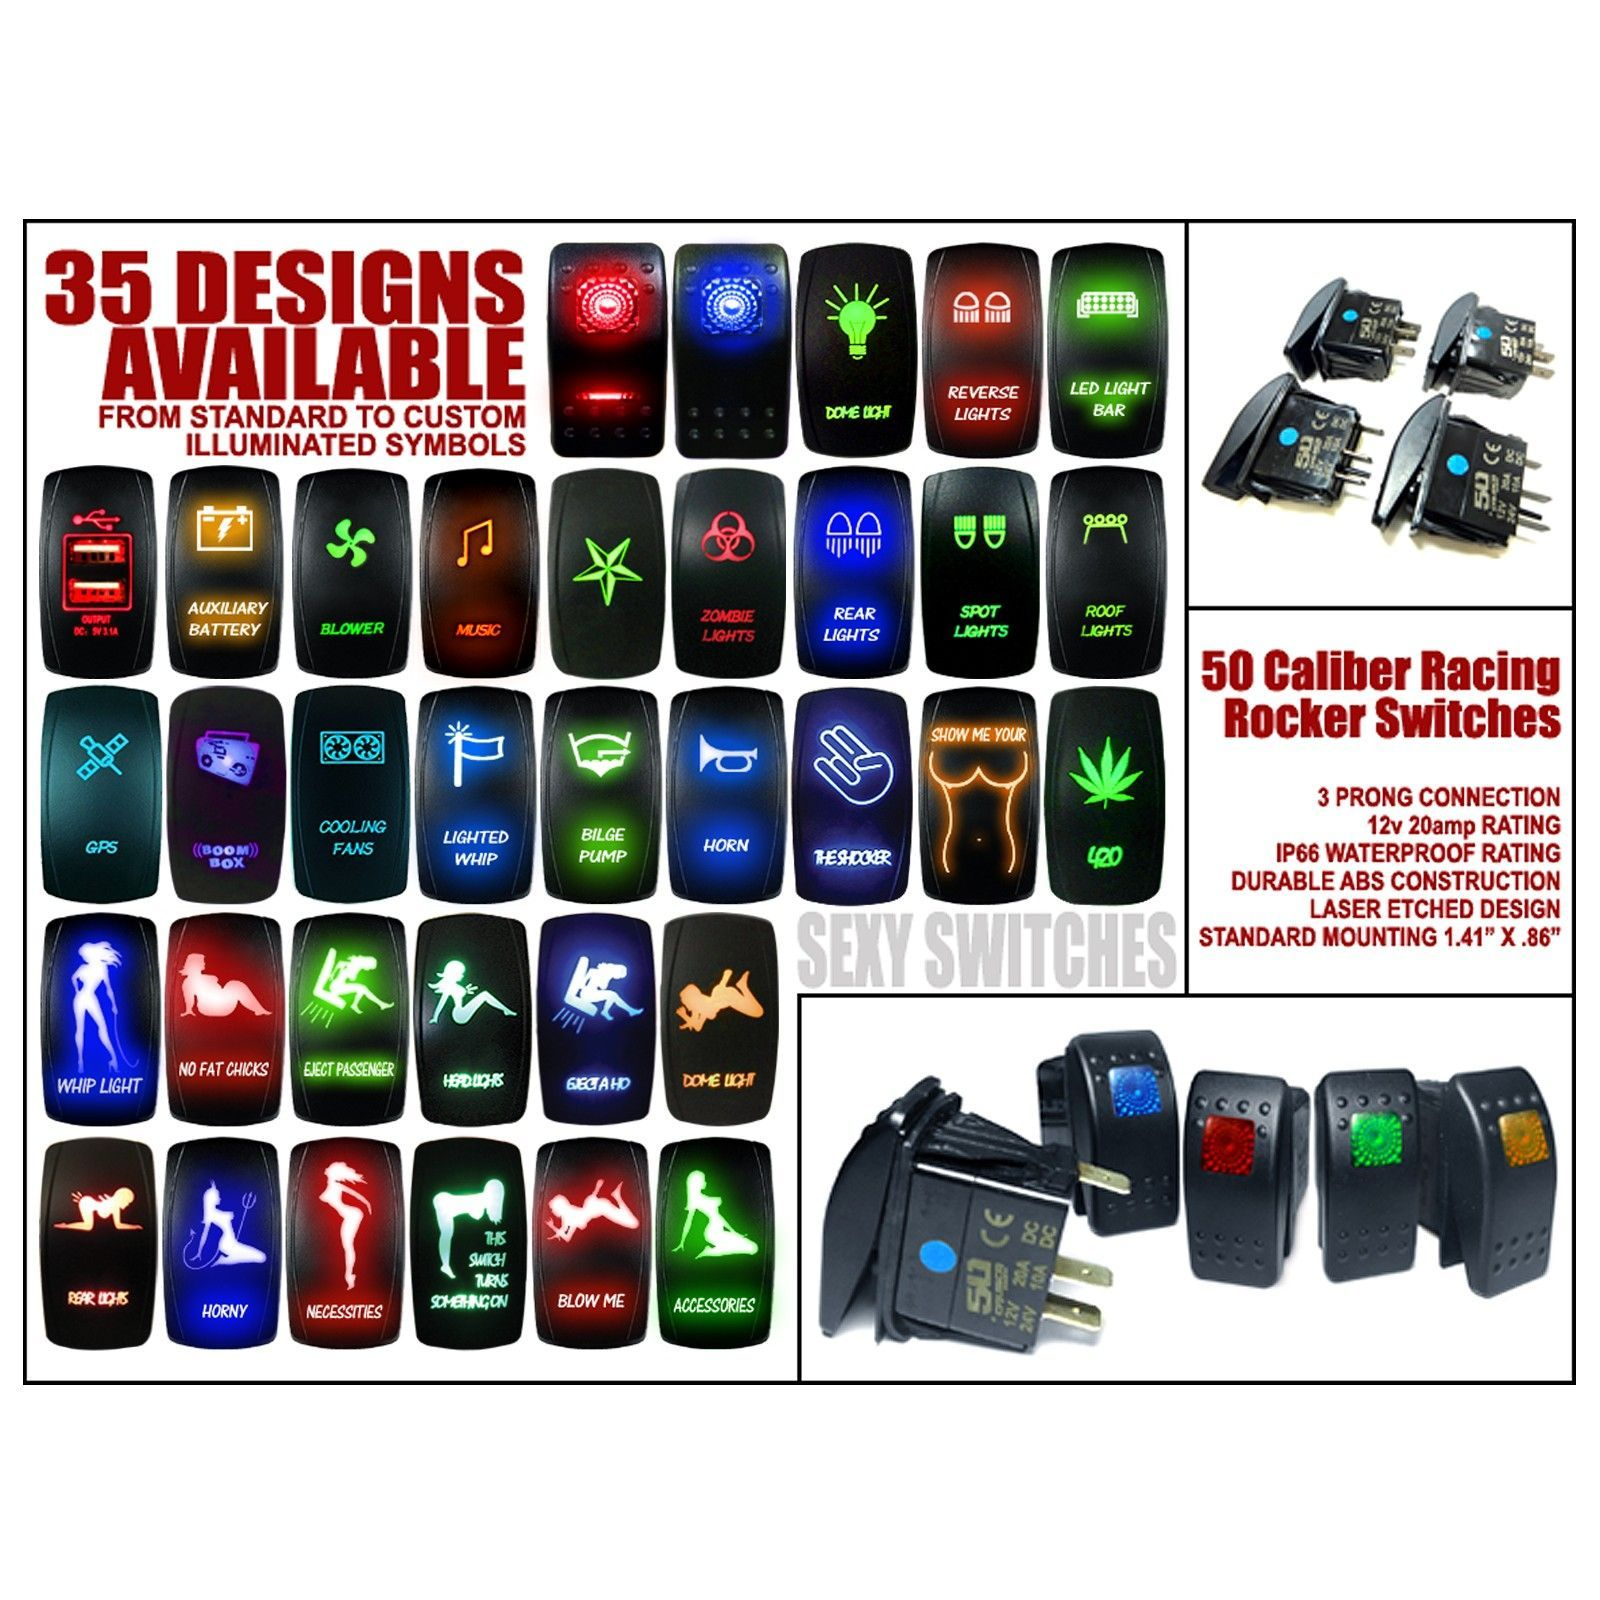 Rocker Switches Spst Switch 12v Lighted Mpjacom Illuminated Caliber Racing On Off With Laser Etched Design 1600x1600